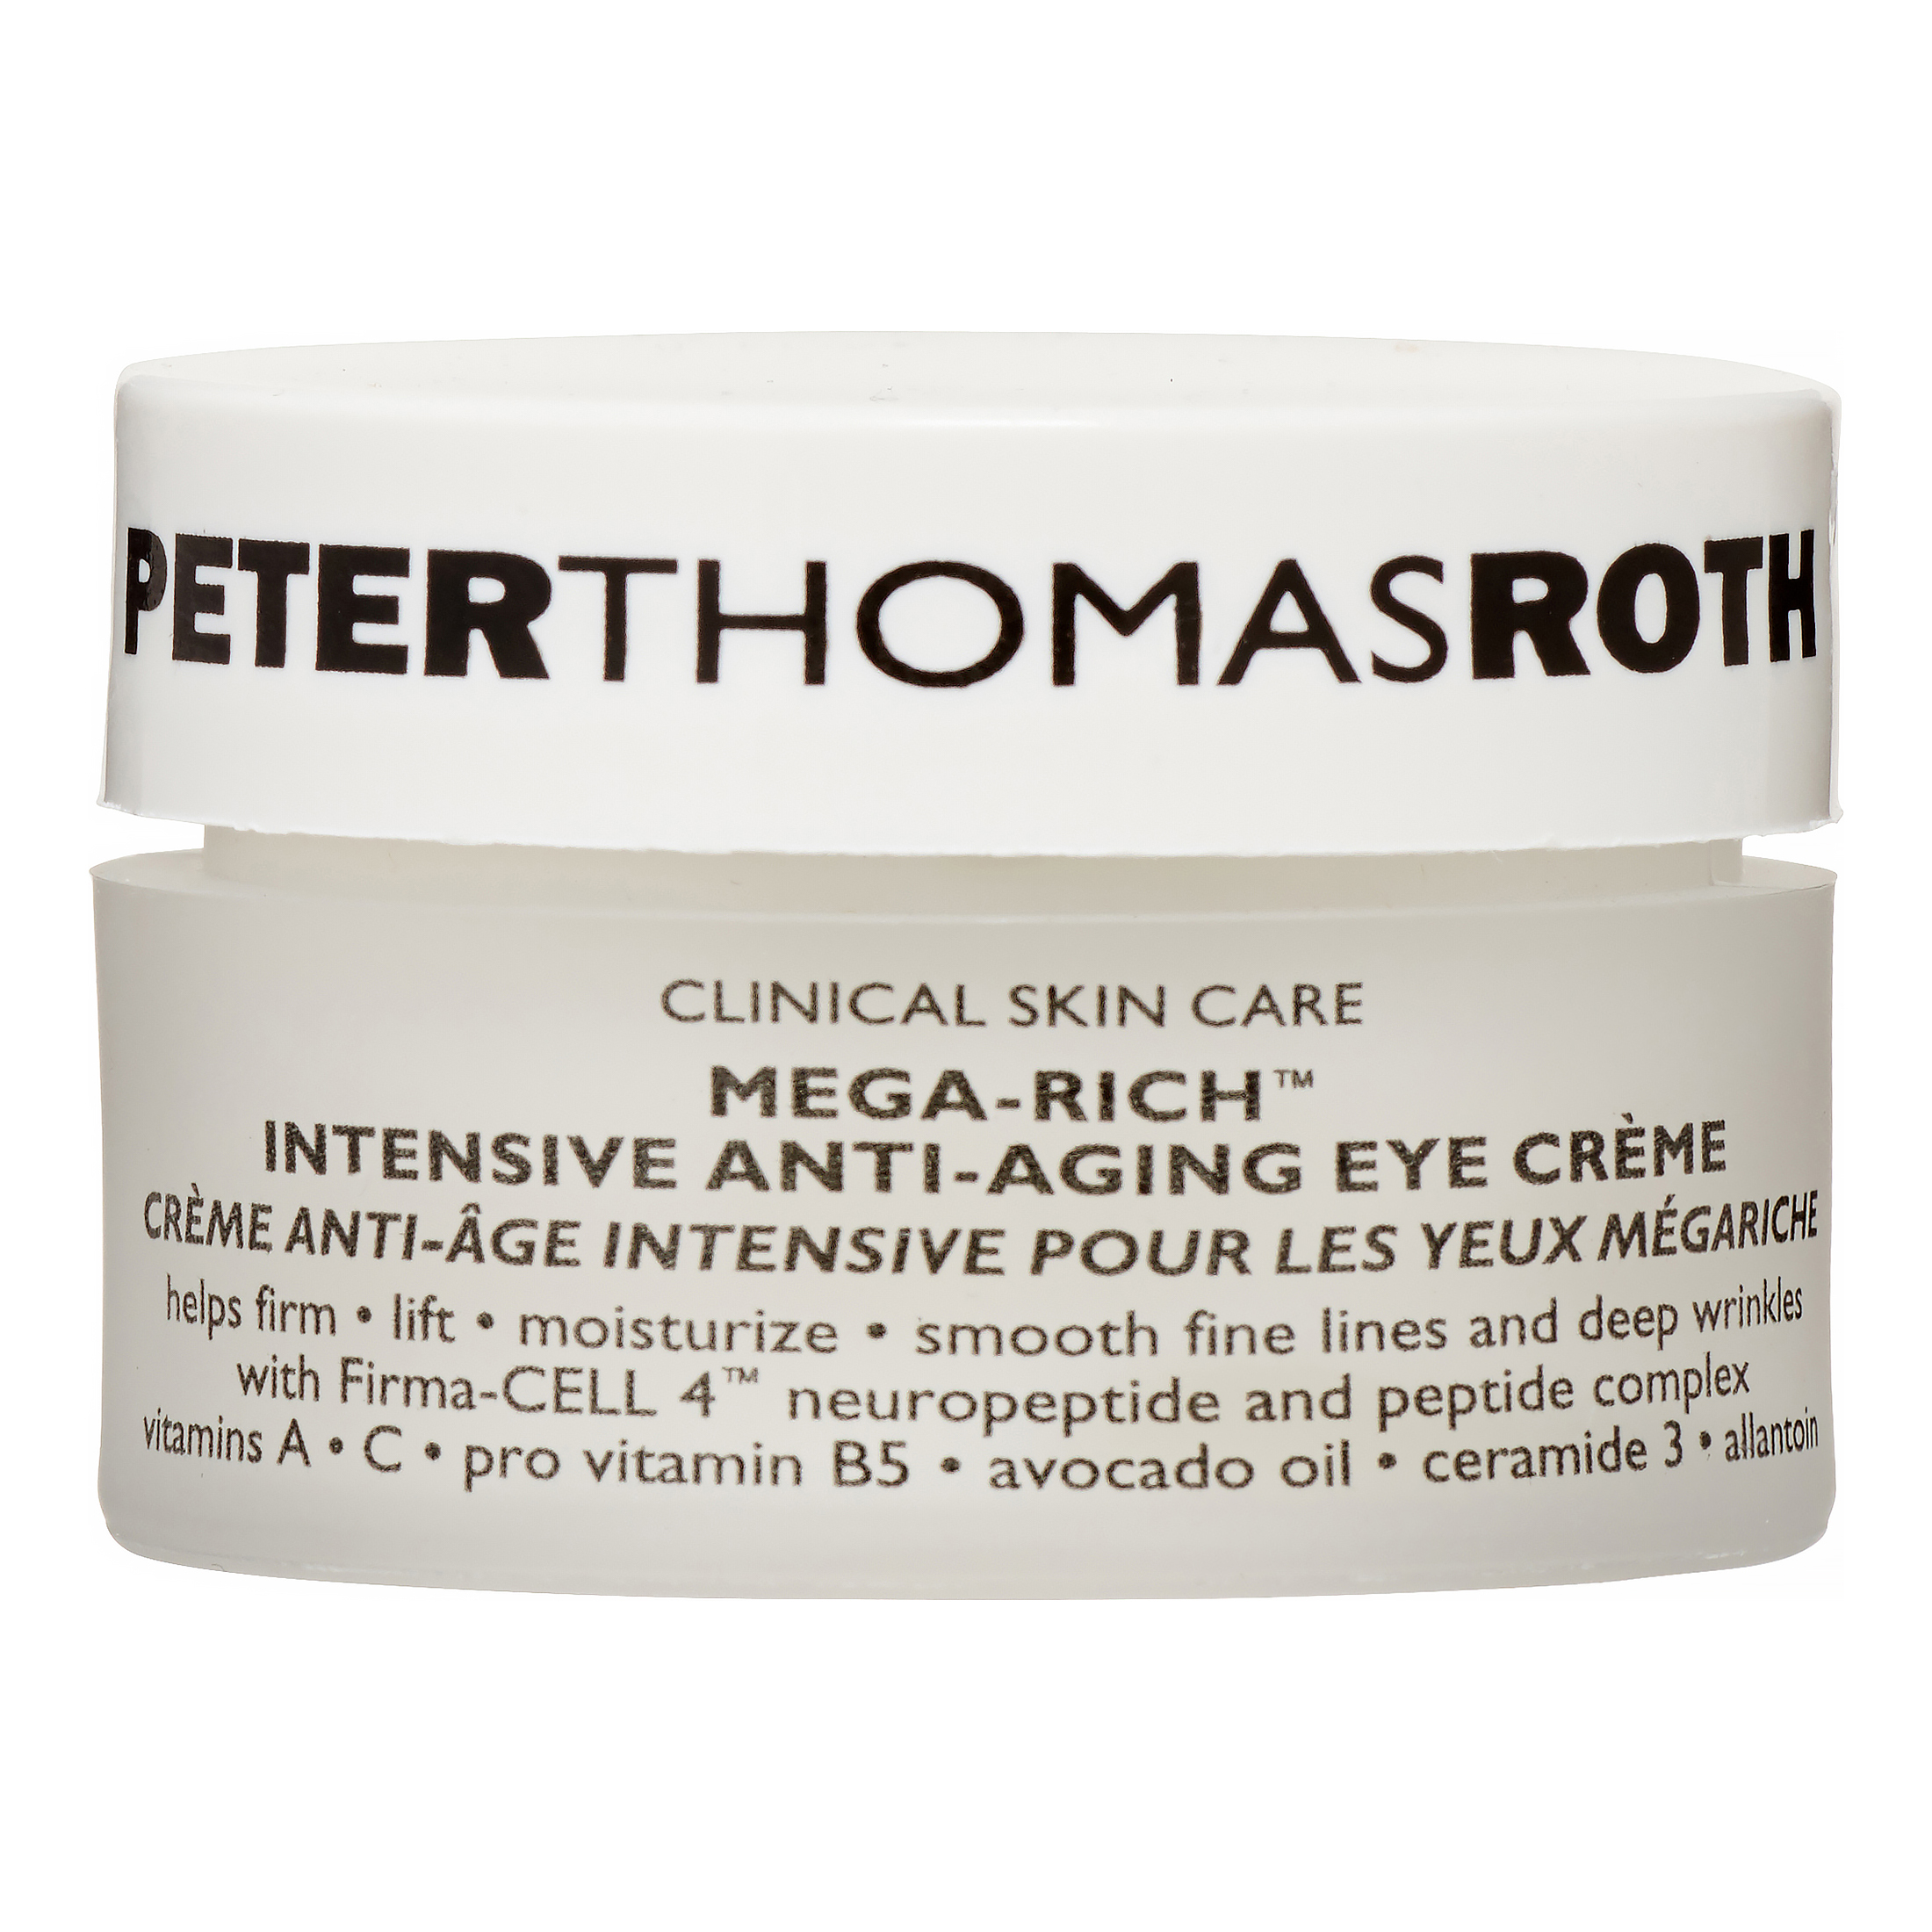 Peter Thomas Roth Mega-Rich Intensive Anti-Aging Cellular Eye Crème, 0.76 Oz